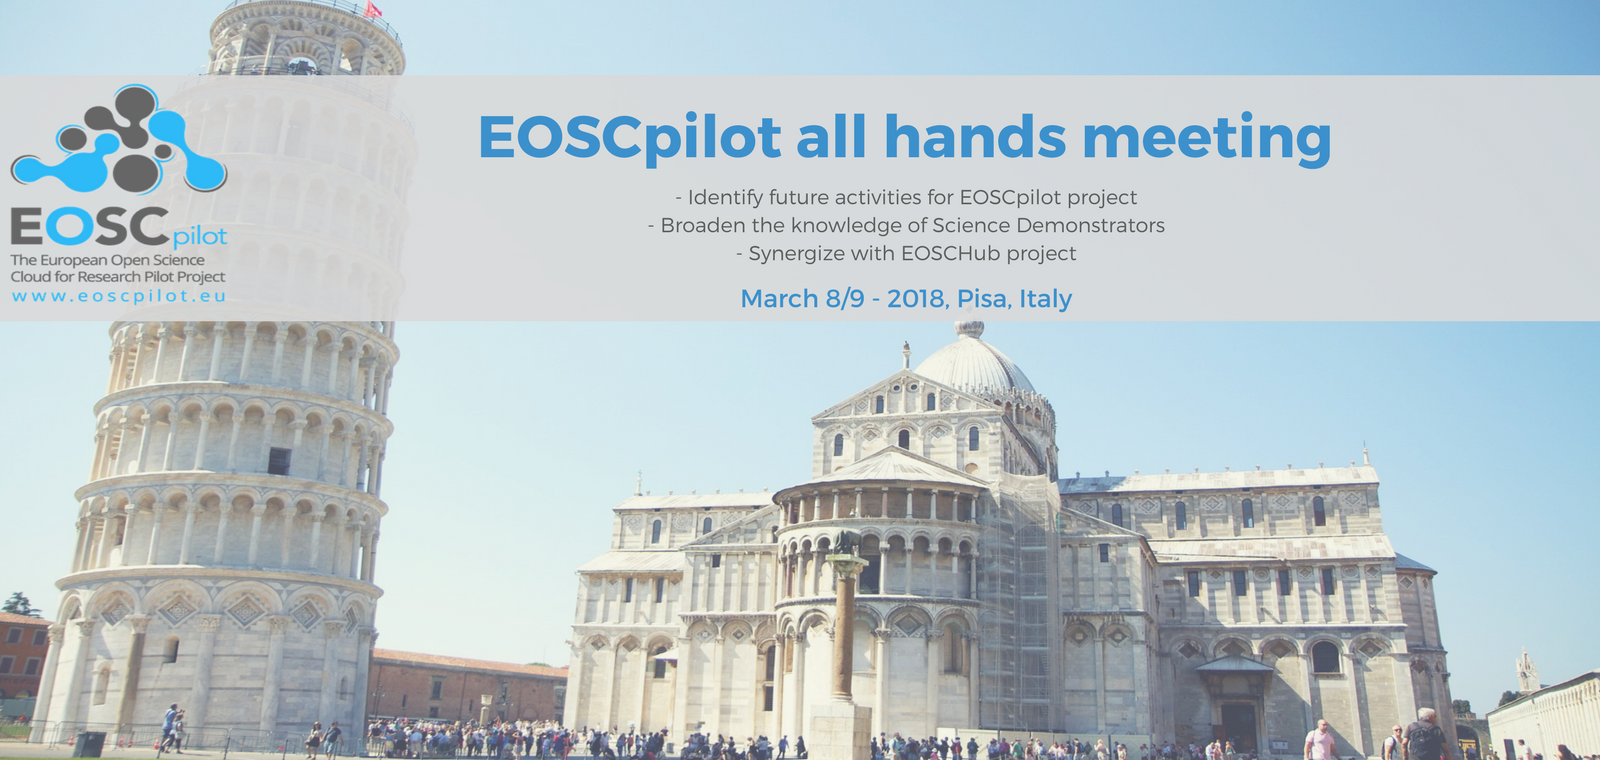 EOSCpilot All Hands Meeting